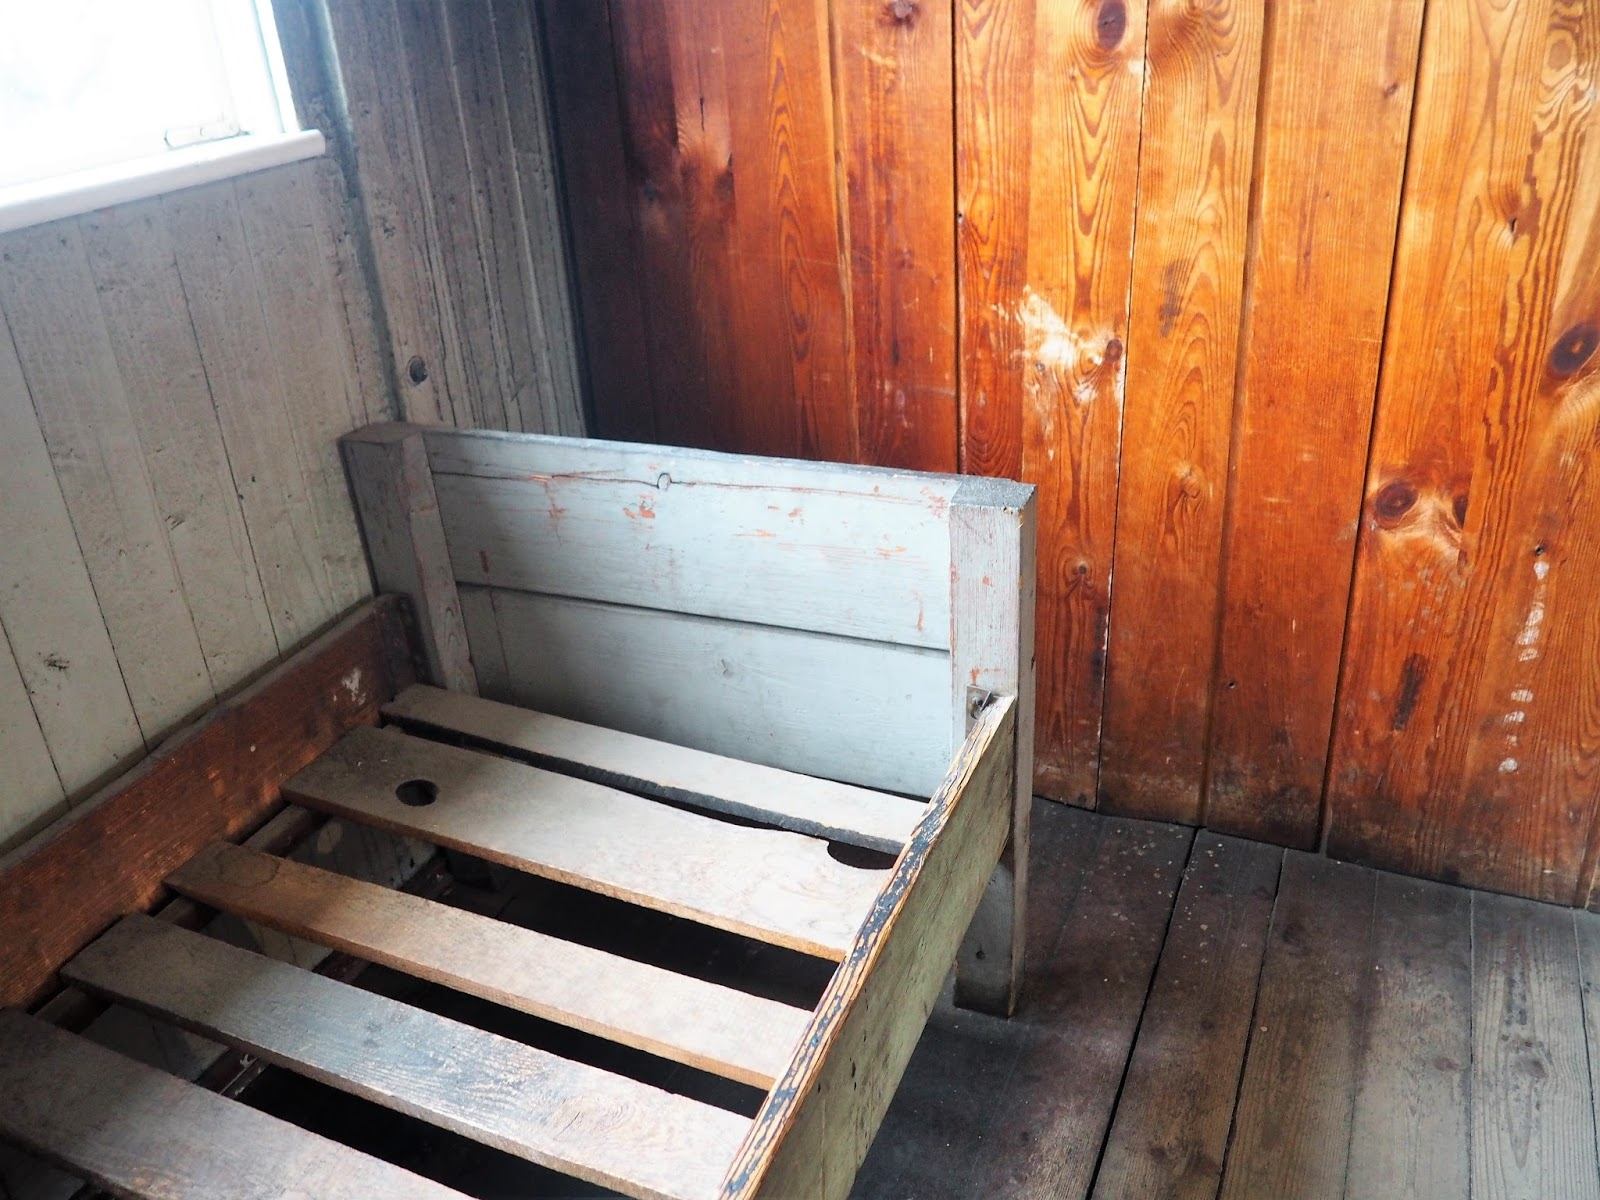 Sachsenhausen Concentration Camp bed